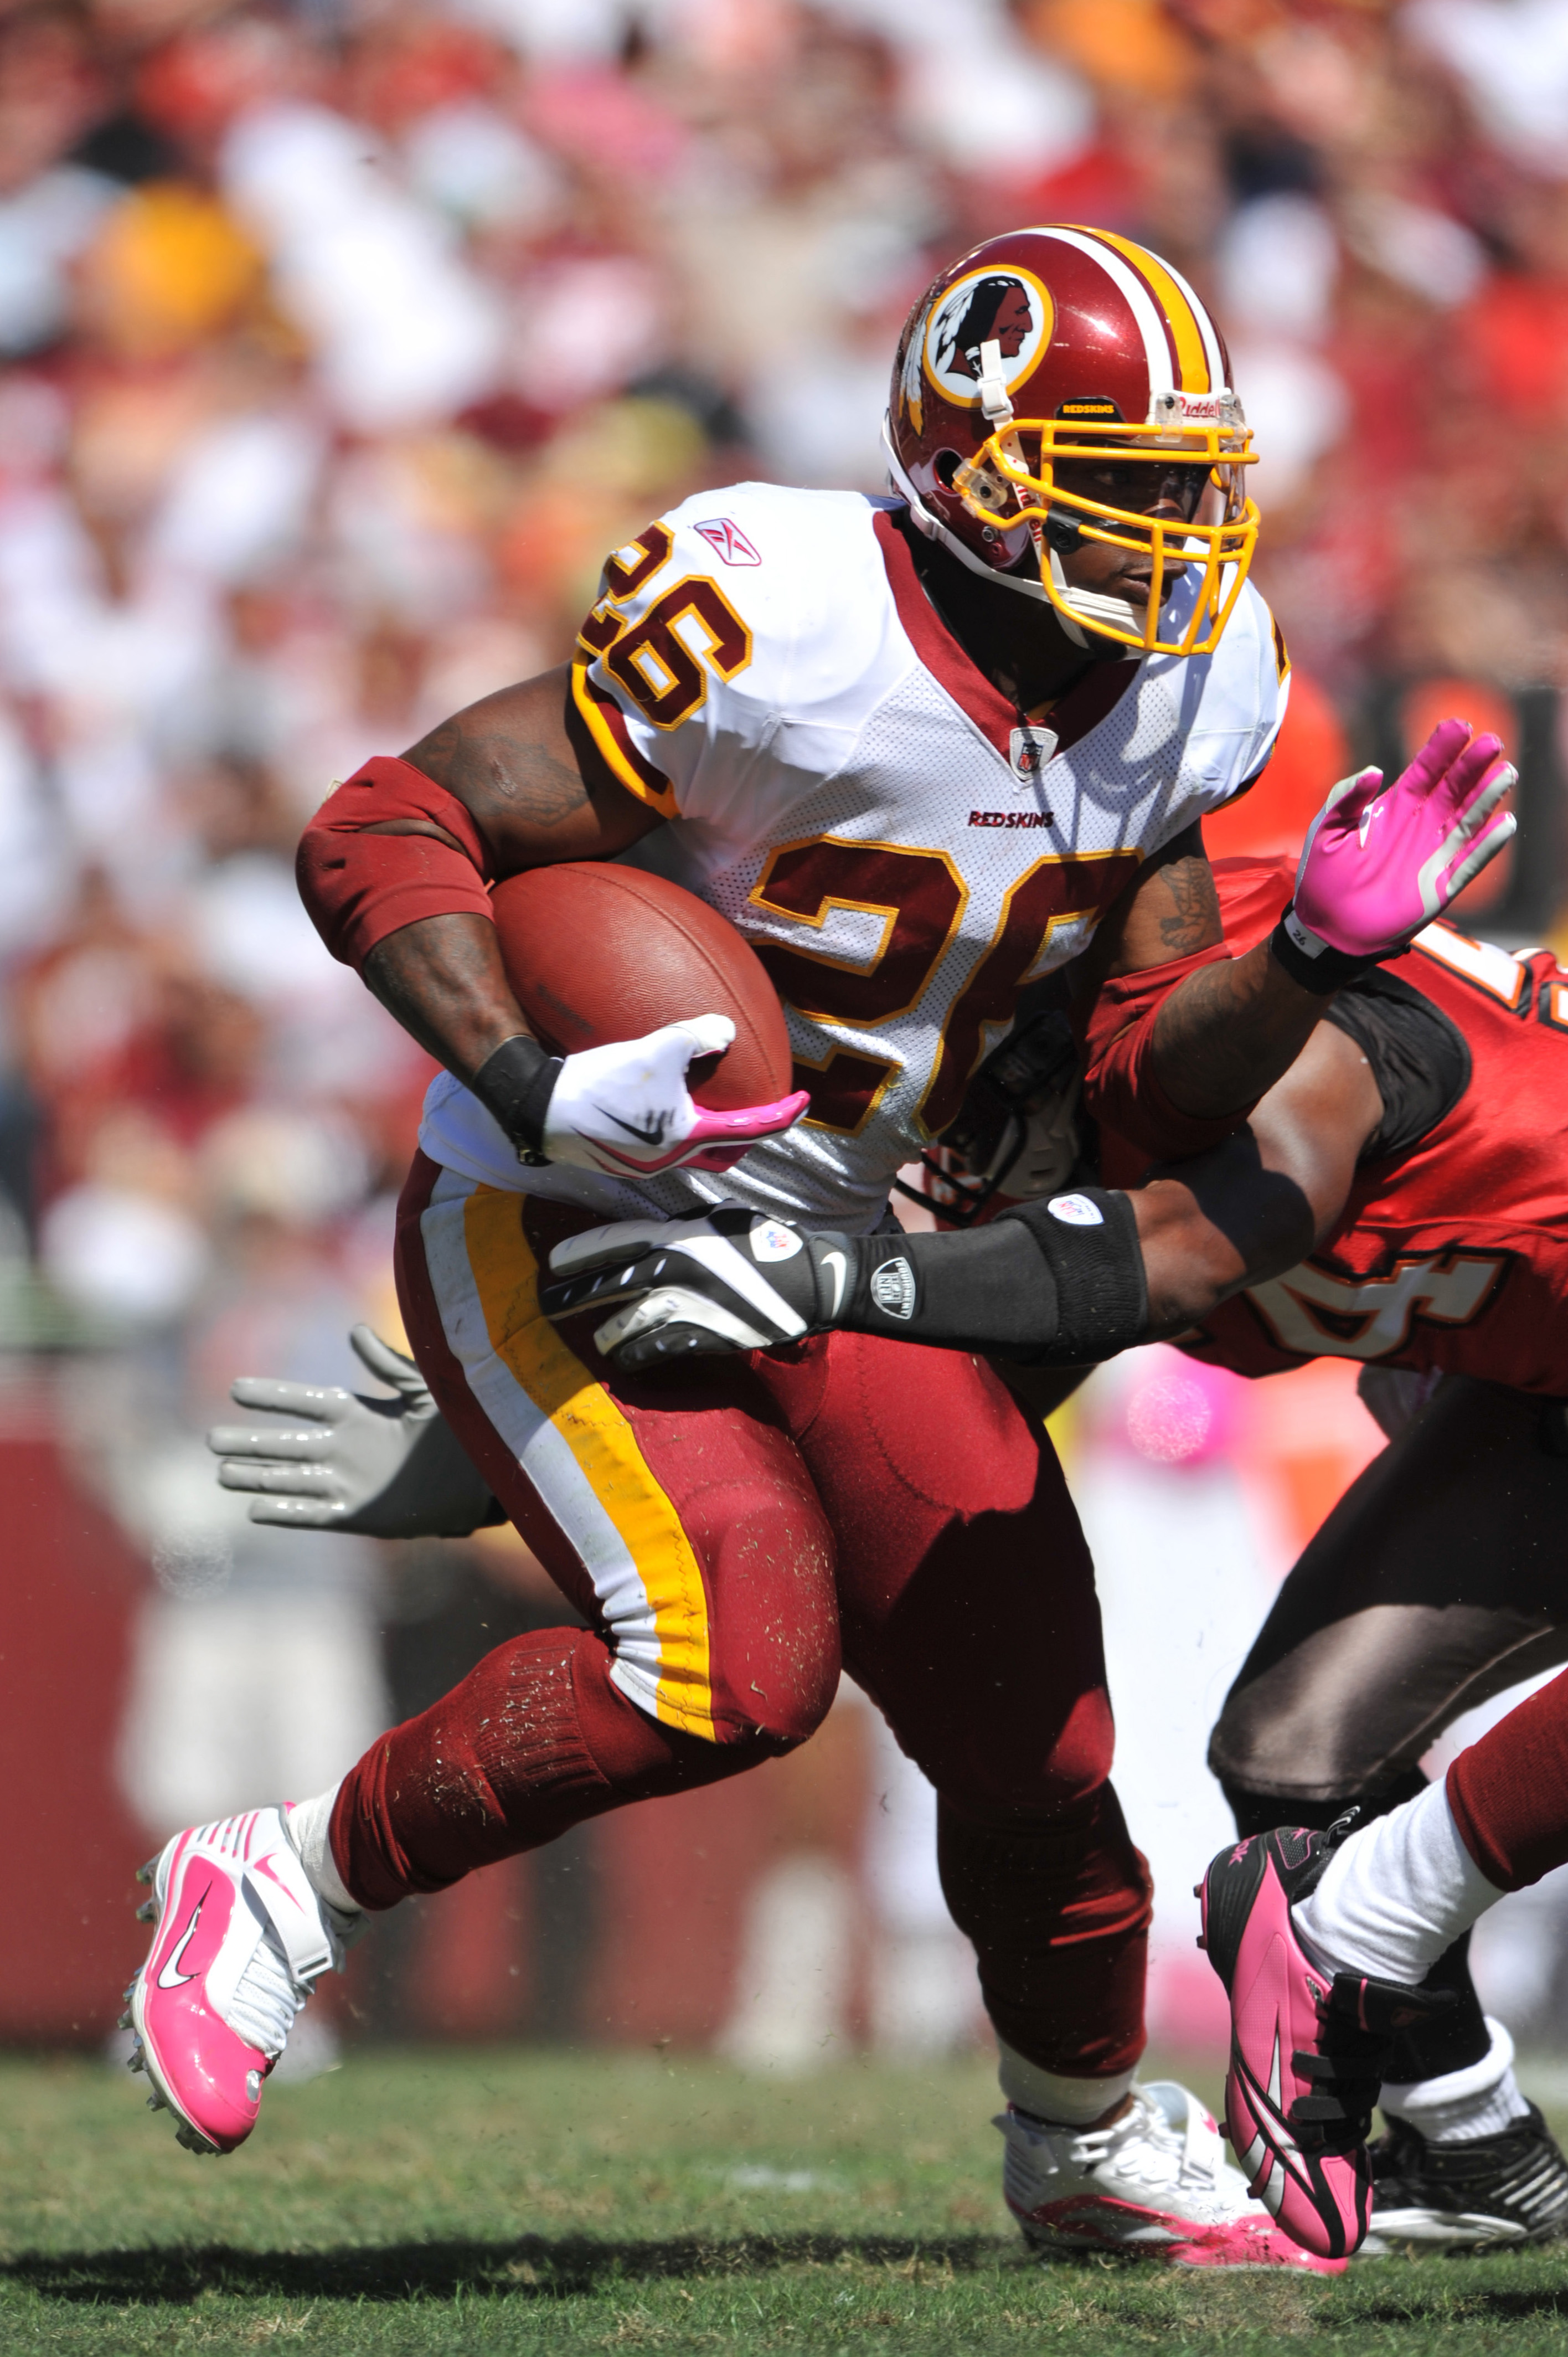 LANDOVER, MD - OCTOBER 4:  Clinton Portis #26 of the Washington Redskins runs the ball against the Tampa Bay Buccaneers at FedExField on October 4, 2009 in Landover, Maryland. The Redskins defeated the Buccaneers 16-13. (Photo by Larry French/Getty Images